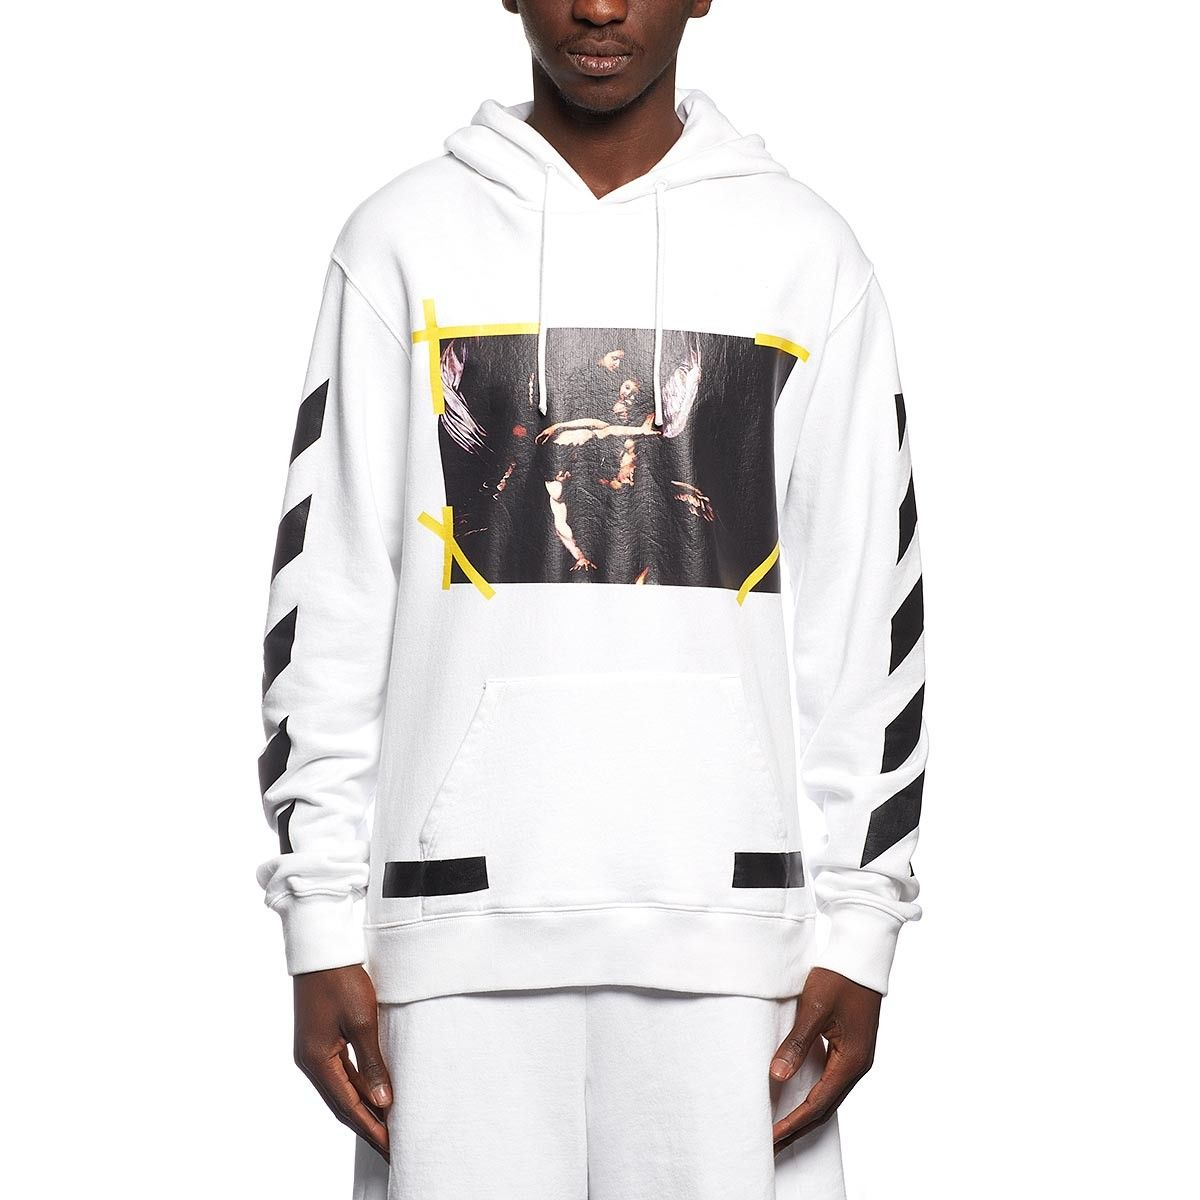 73415c8d1 7 Opere hoodie sweatshirt from the F/W2016-17 Off-White c/o Virgil Abloh  collection in white